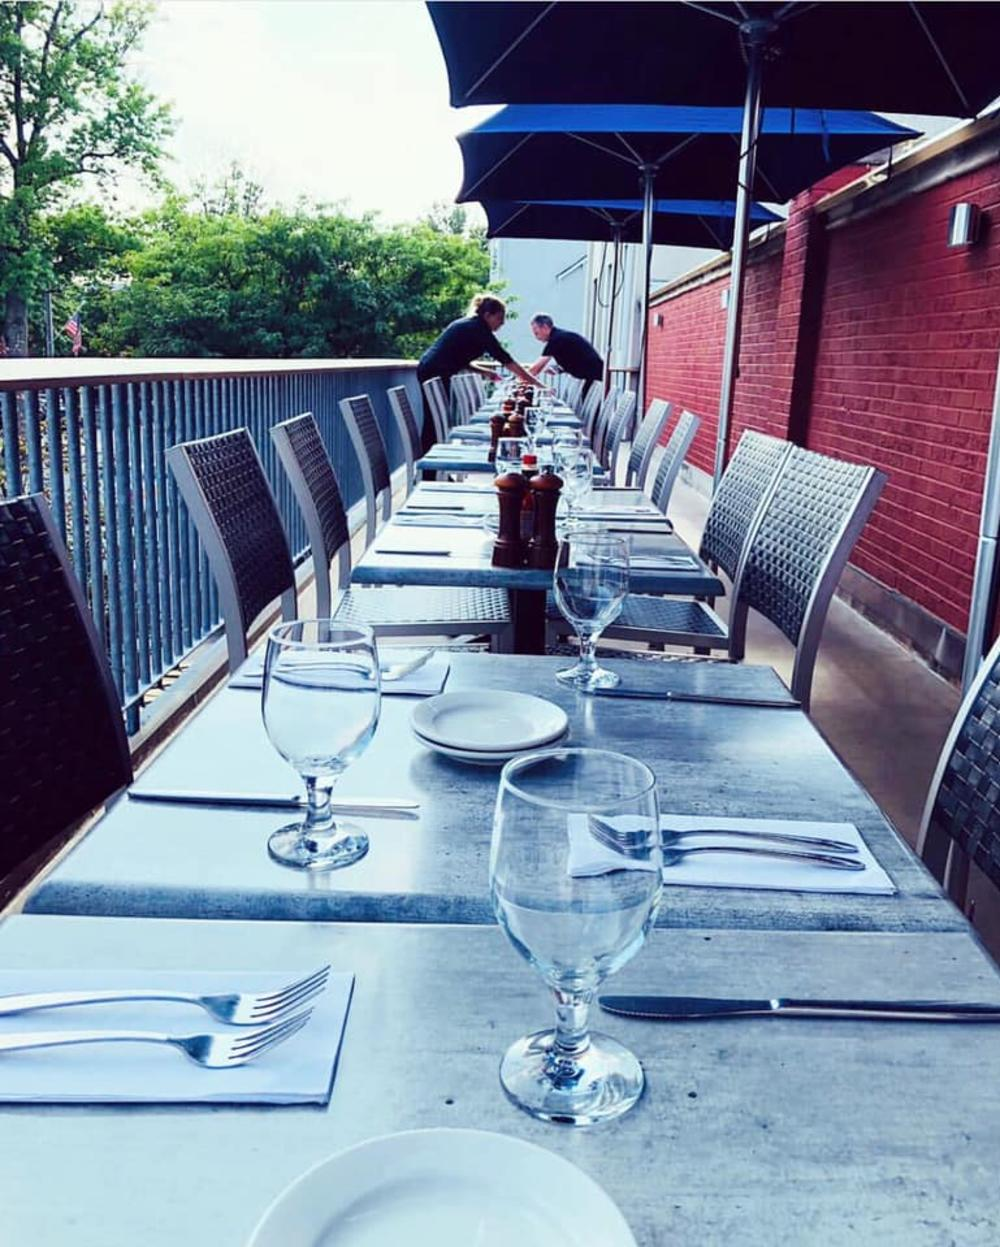 A line of tables set for dinner at a restaurant outside